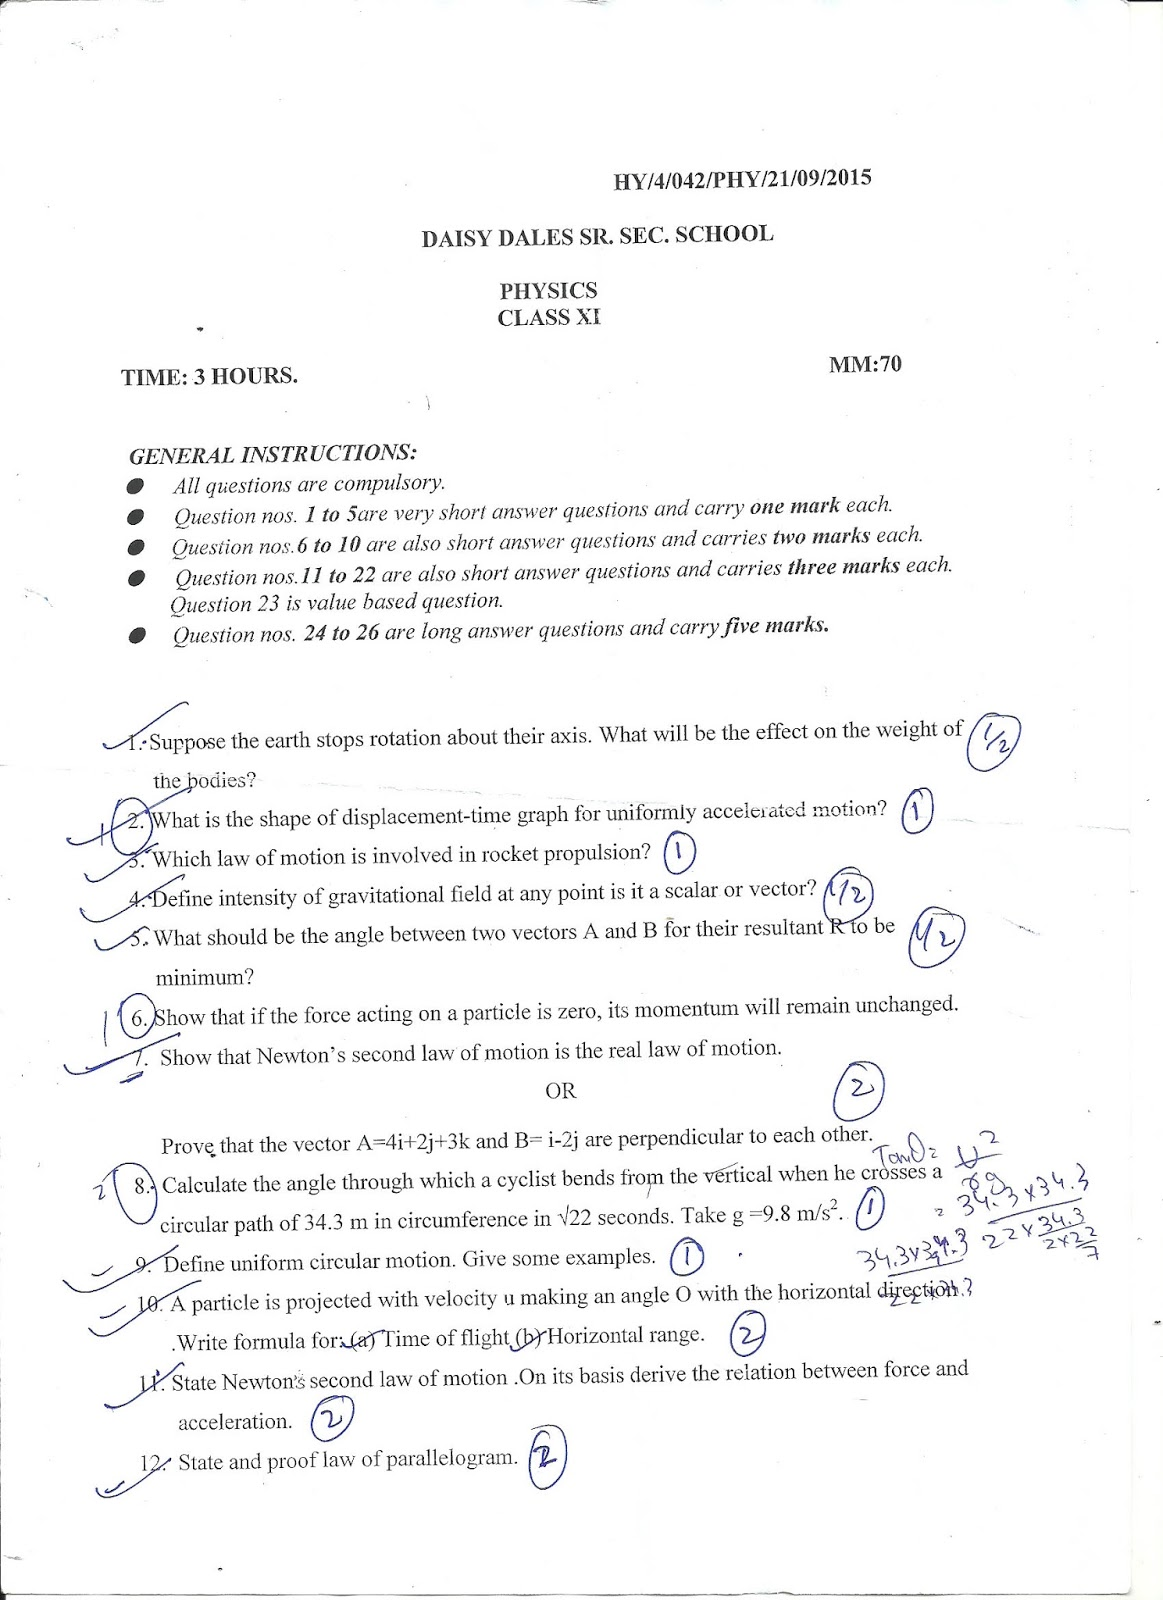 physics term paper class xi physics daisy dales sr sec school east of kailash first term question paper science